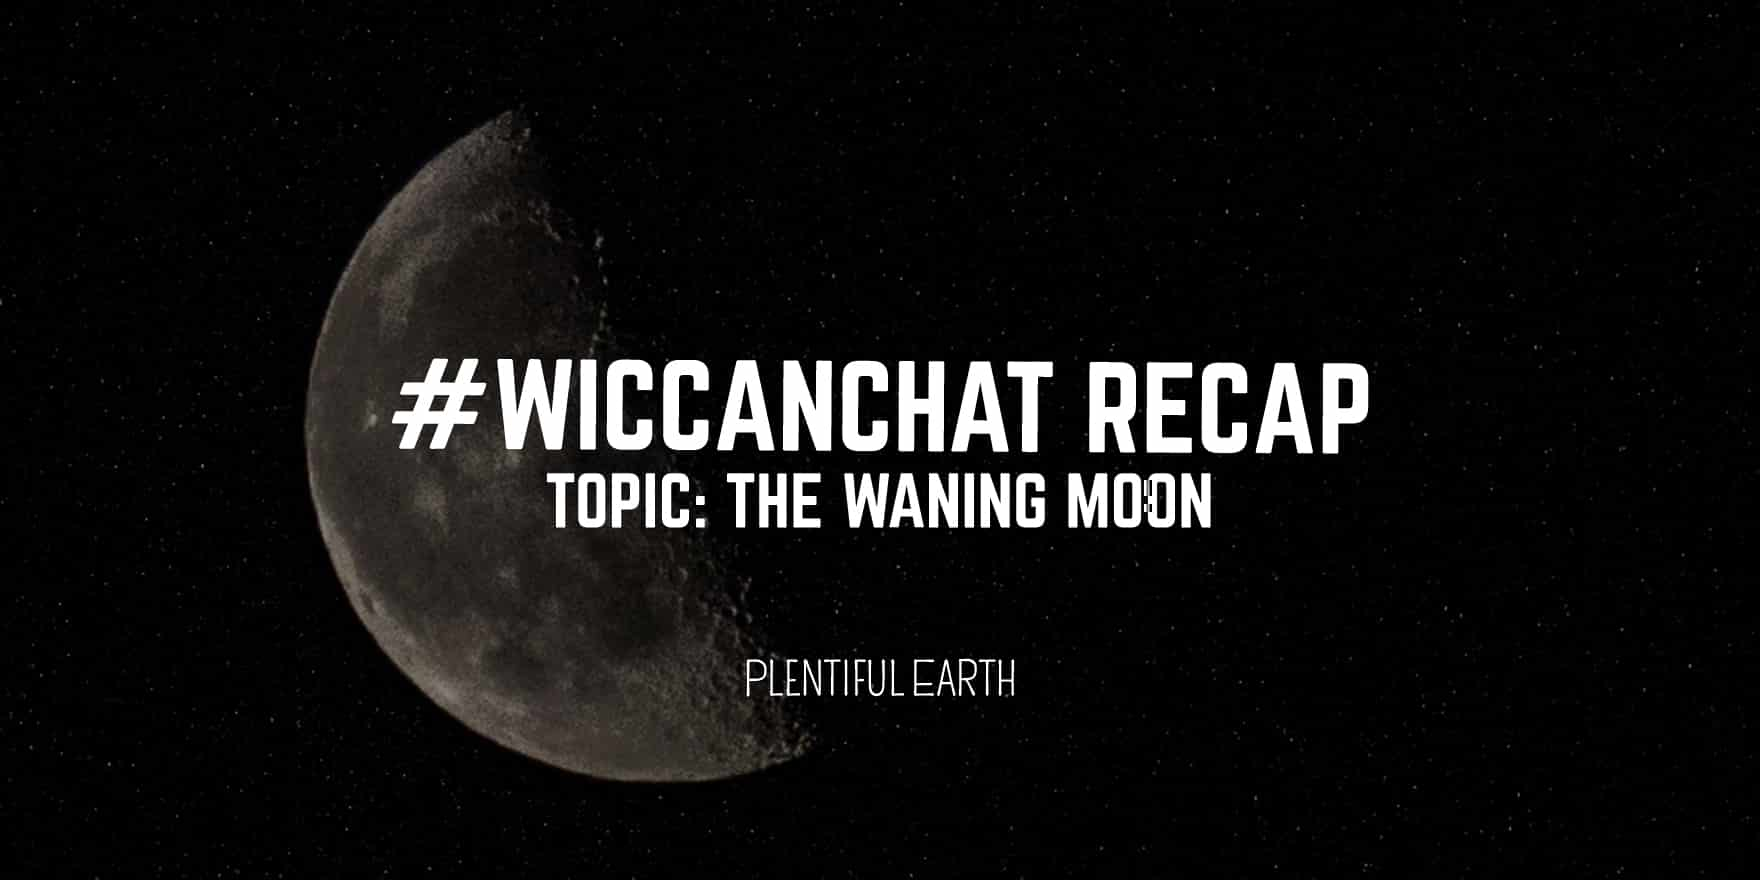 The Waning Moon Your Wiccanchat Recap Plentiful Earth